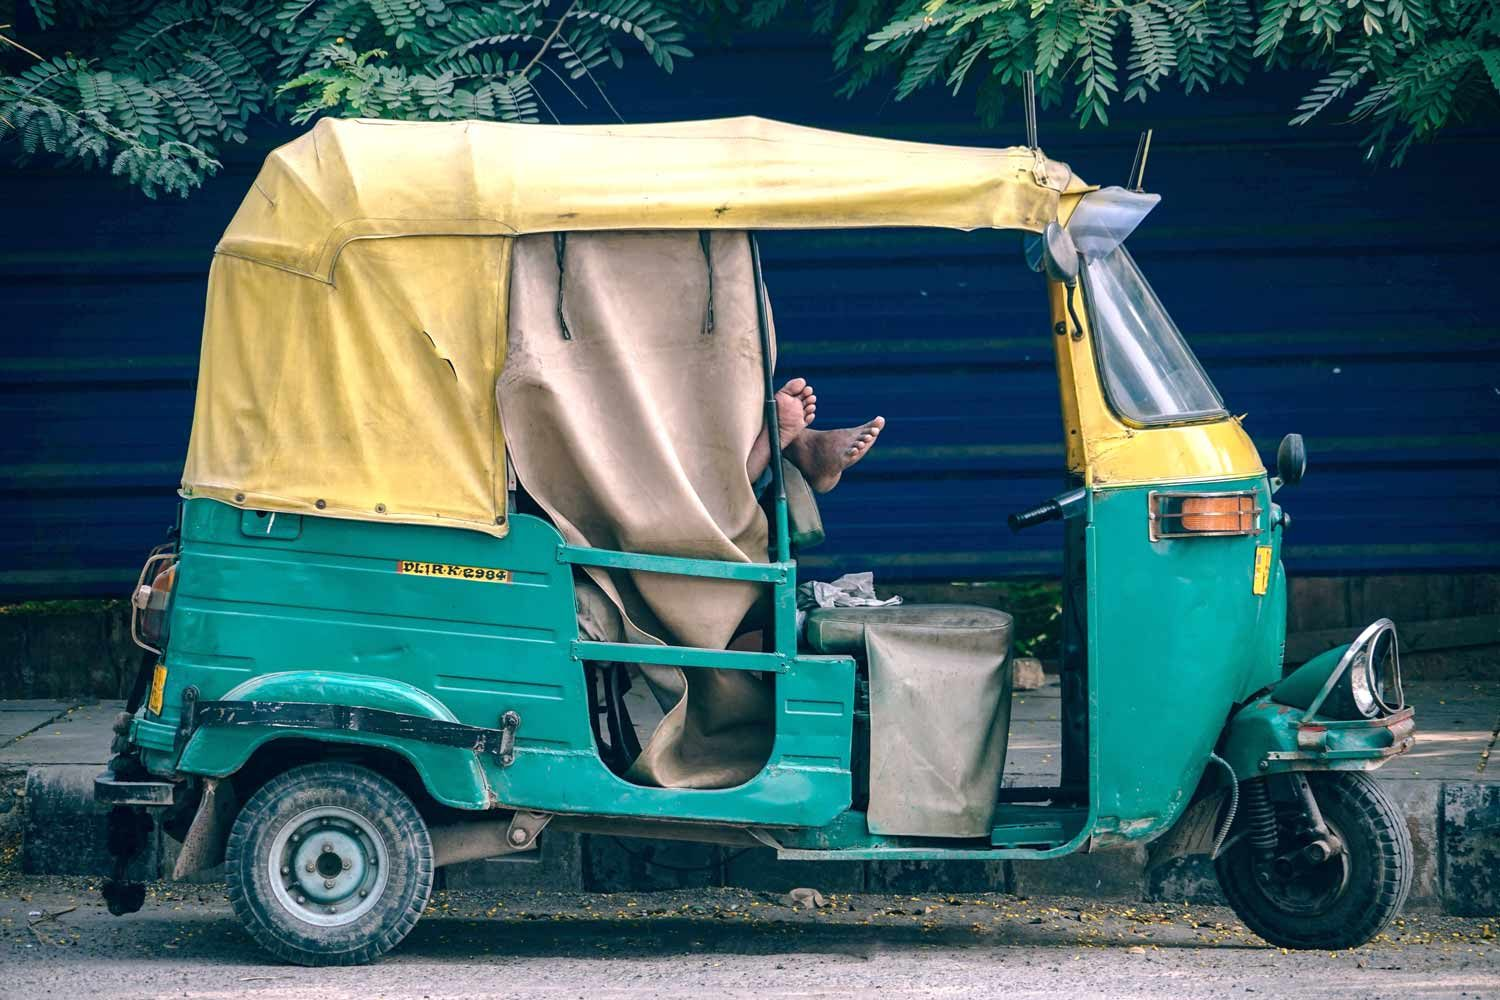 Indisches Tuktuk in Mumbai